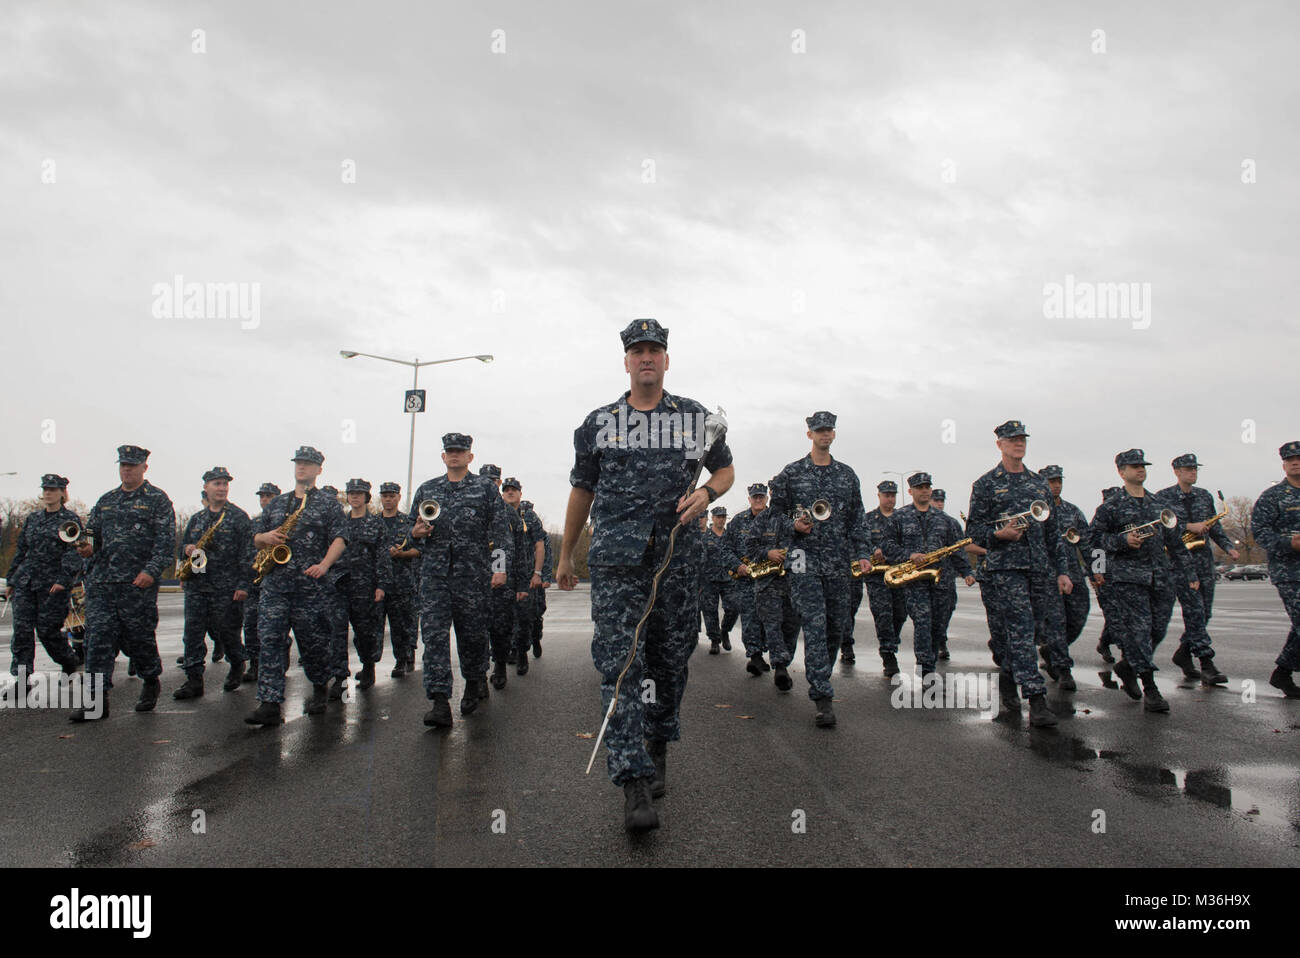 161130-N-HG258-041 WASHINGTON, D.C. (November 30, 2016) Senior Chief Petty Officer leads members of the U.S. Navy - Stock Image